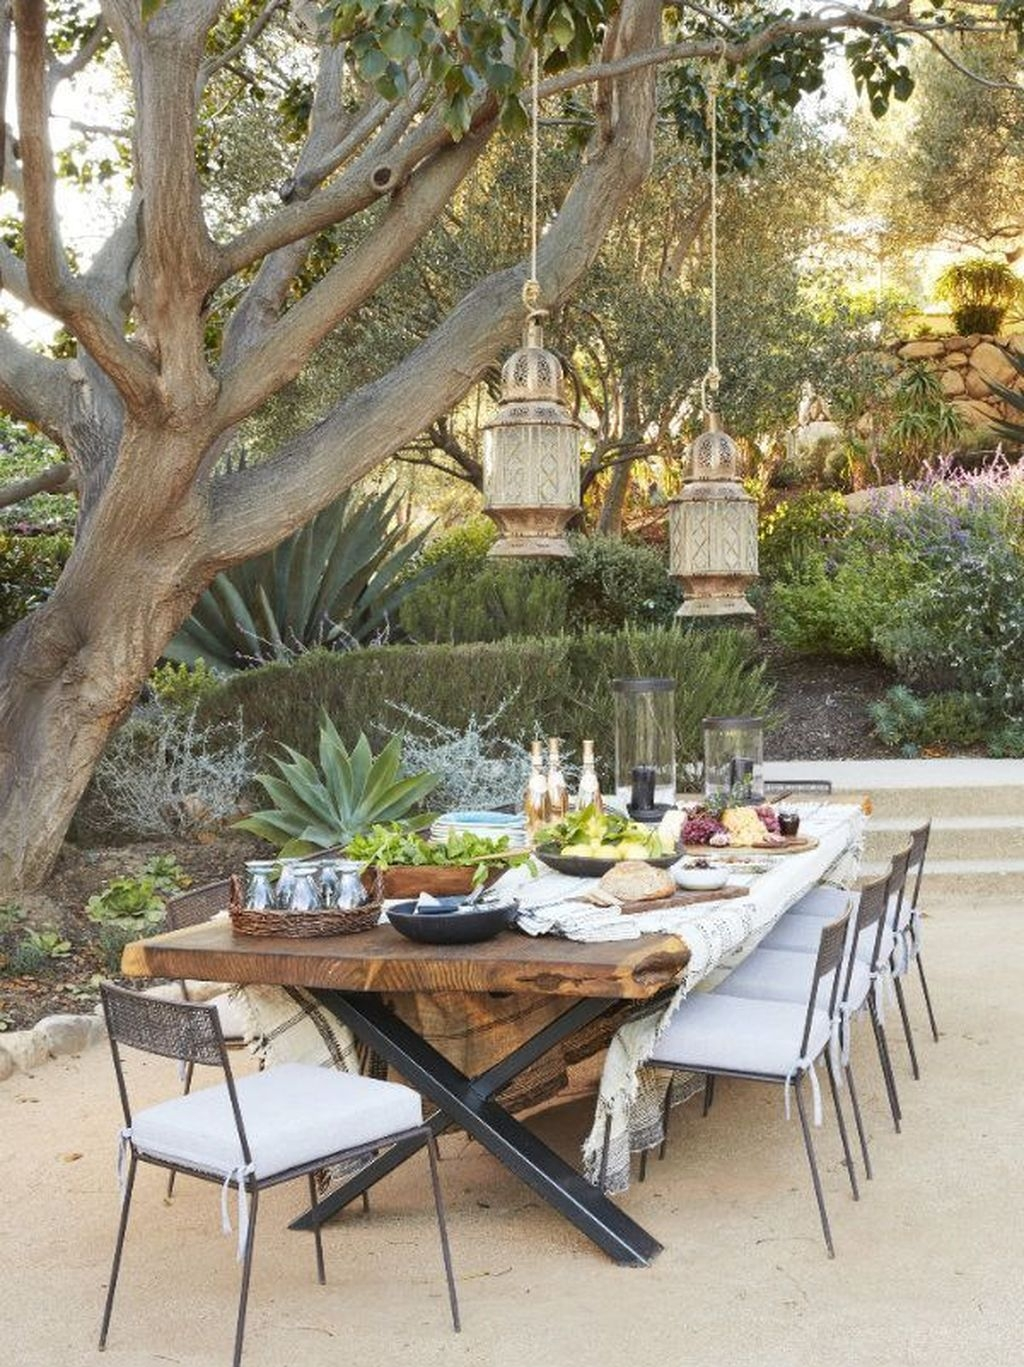 5 Ideas For the Perfect Al Fresco Dining Area Best Destinations Best Destinations To Travel During Summer 2018 5 Ideas For the Perfect Al Fresco Dining Area 01 Best Destinations Best Destinations To Travel During Summer 2018 5 Ideas For the Perfect Al Fresco Dining Area 01